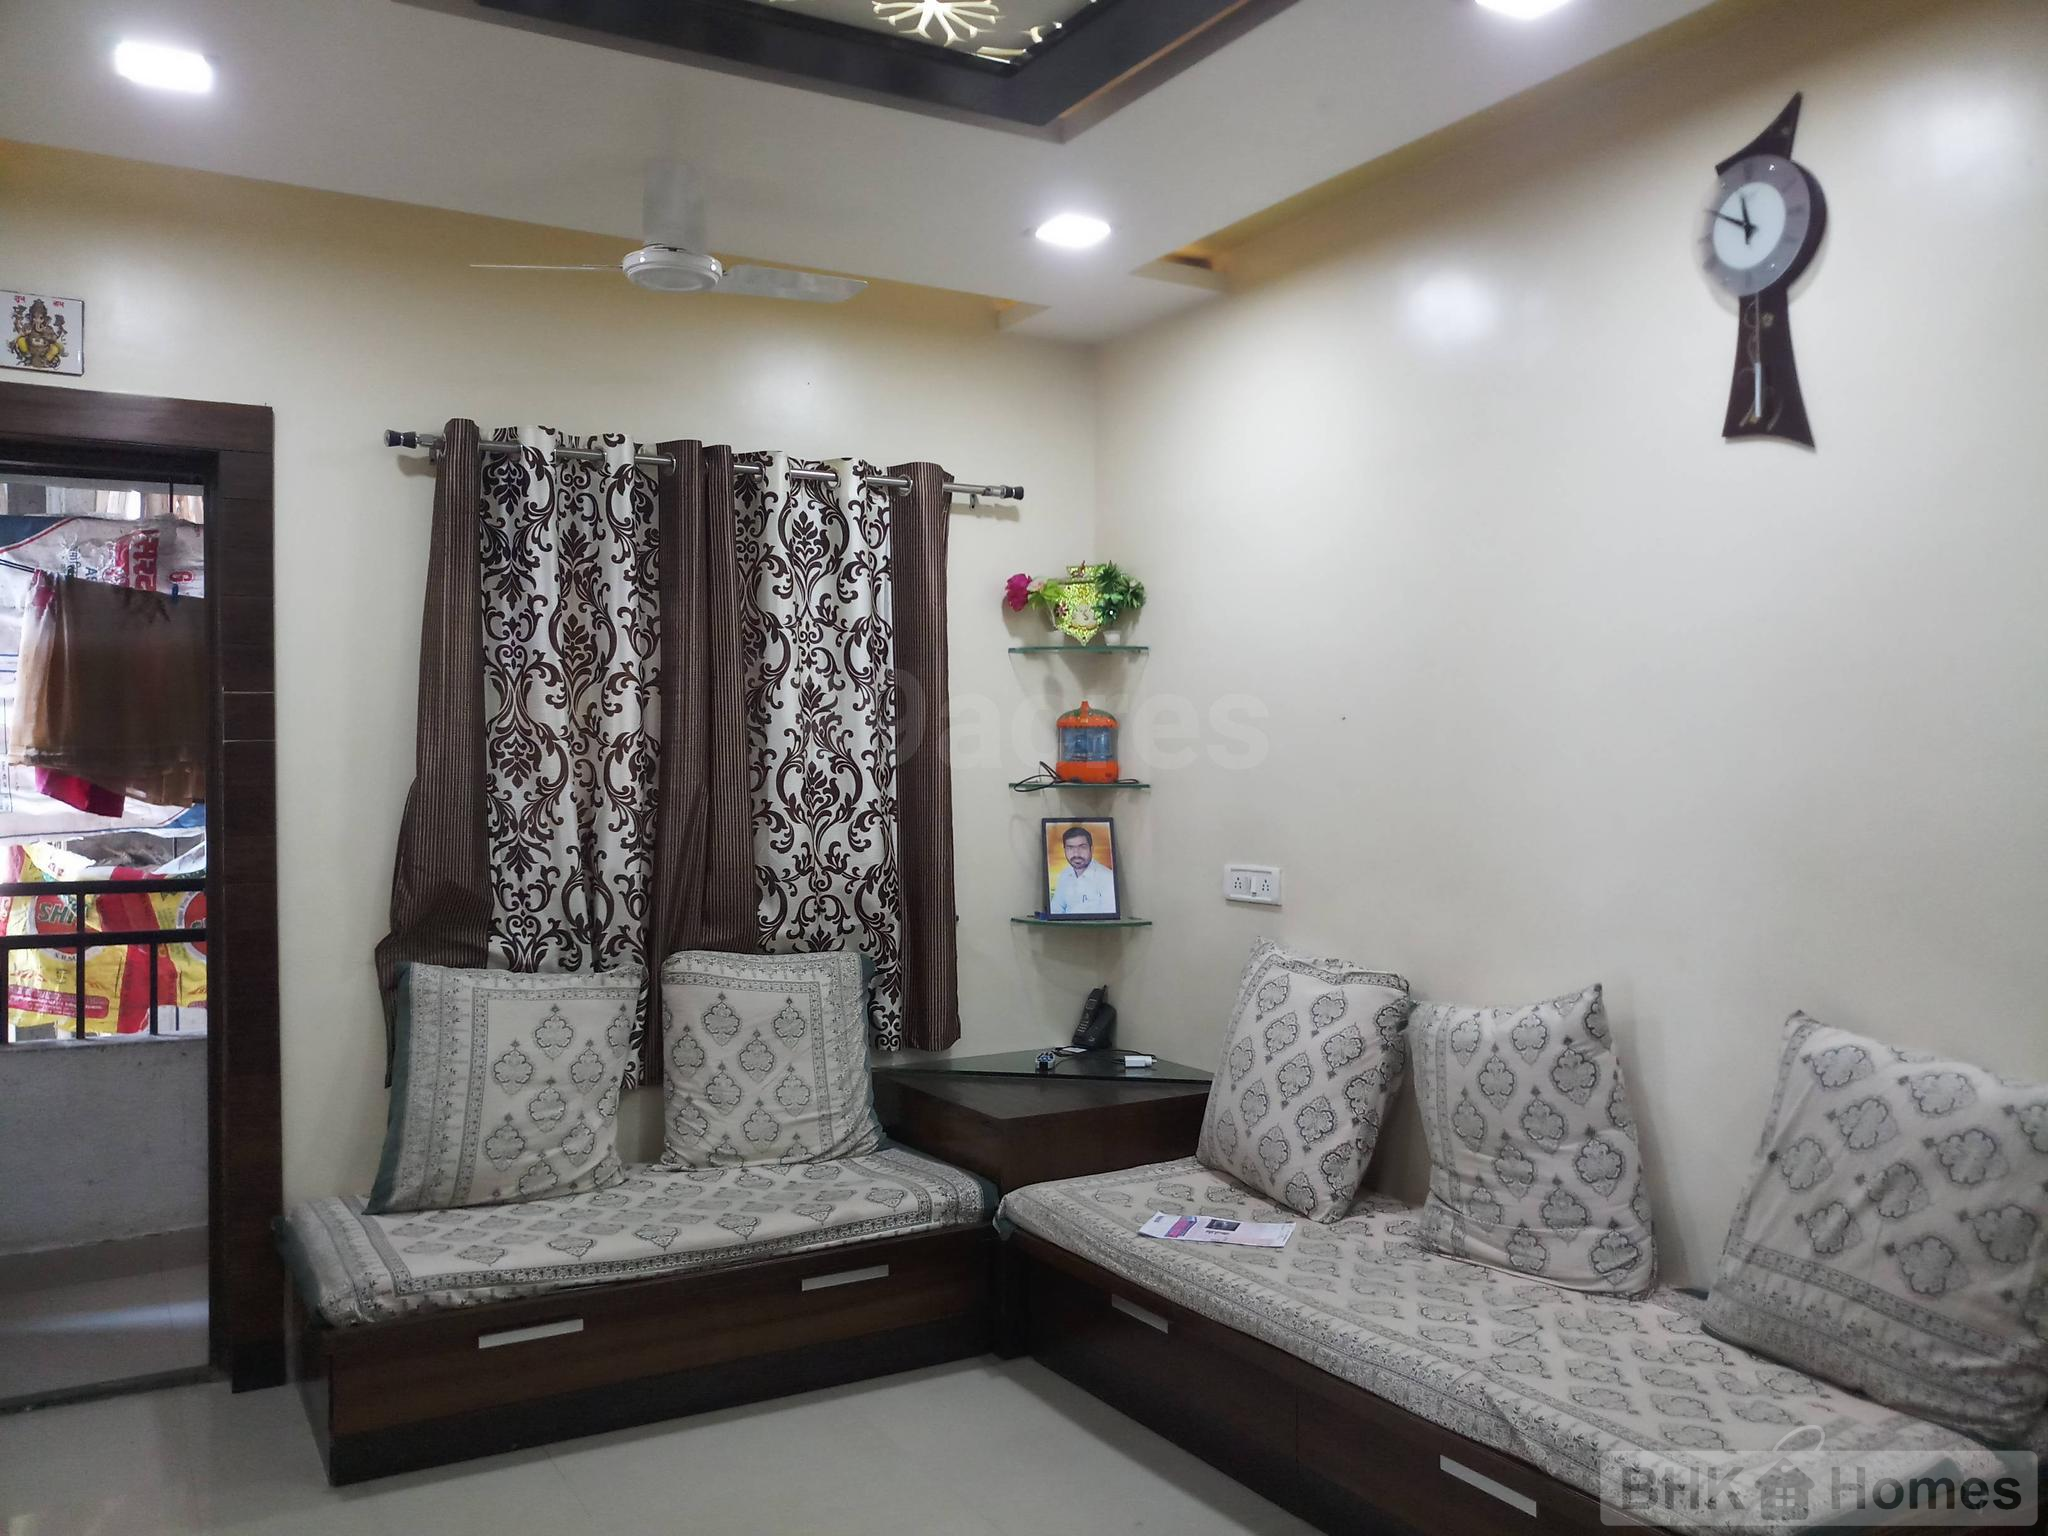 1 BHK Resale Apartment for Sale at Budruk, Pune